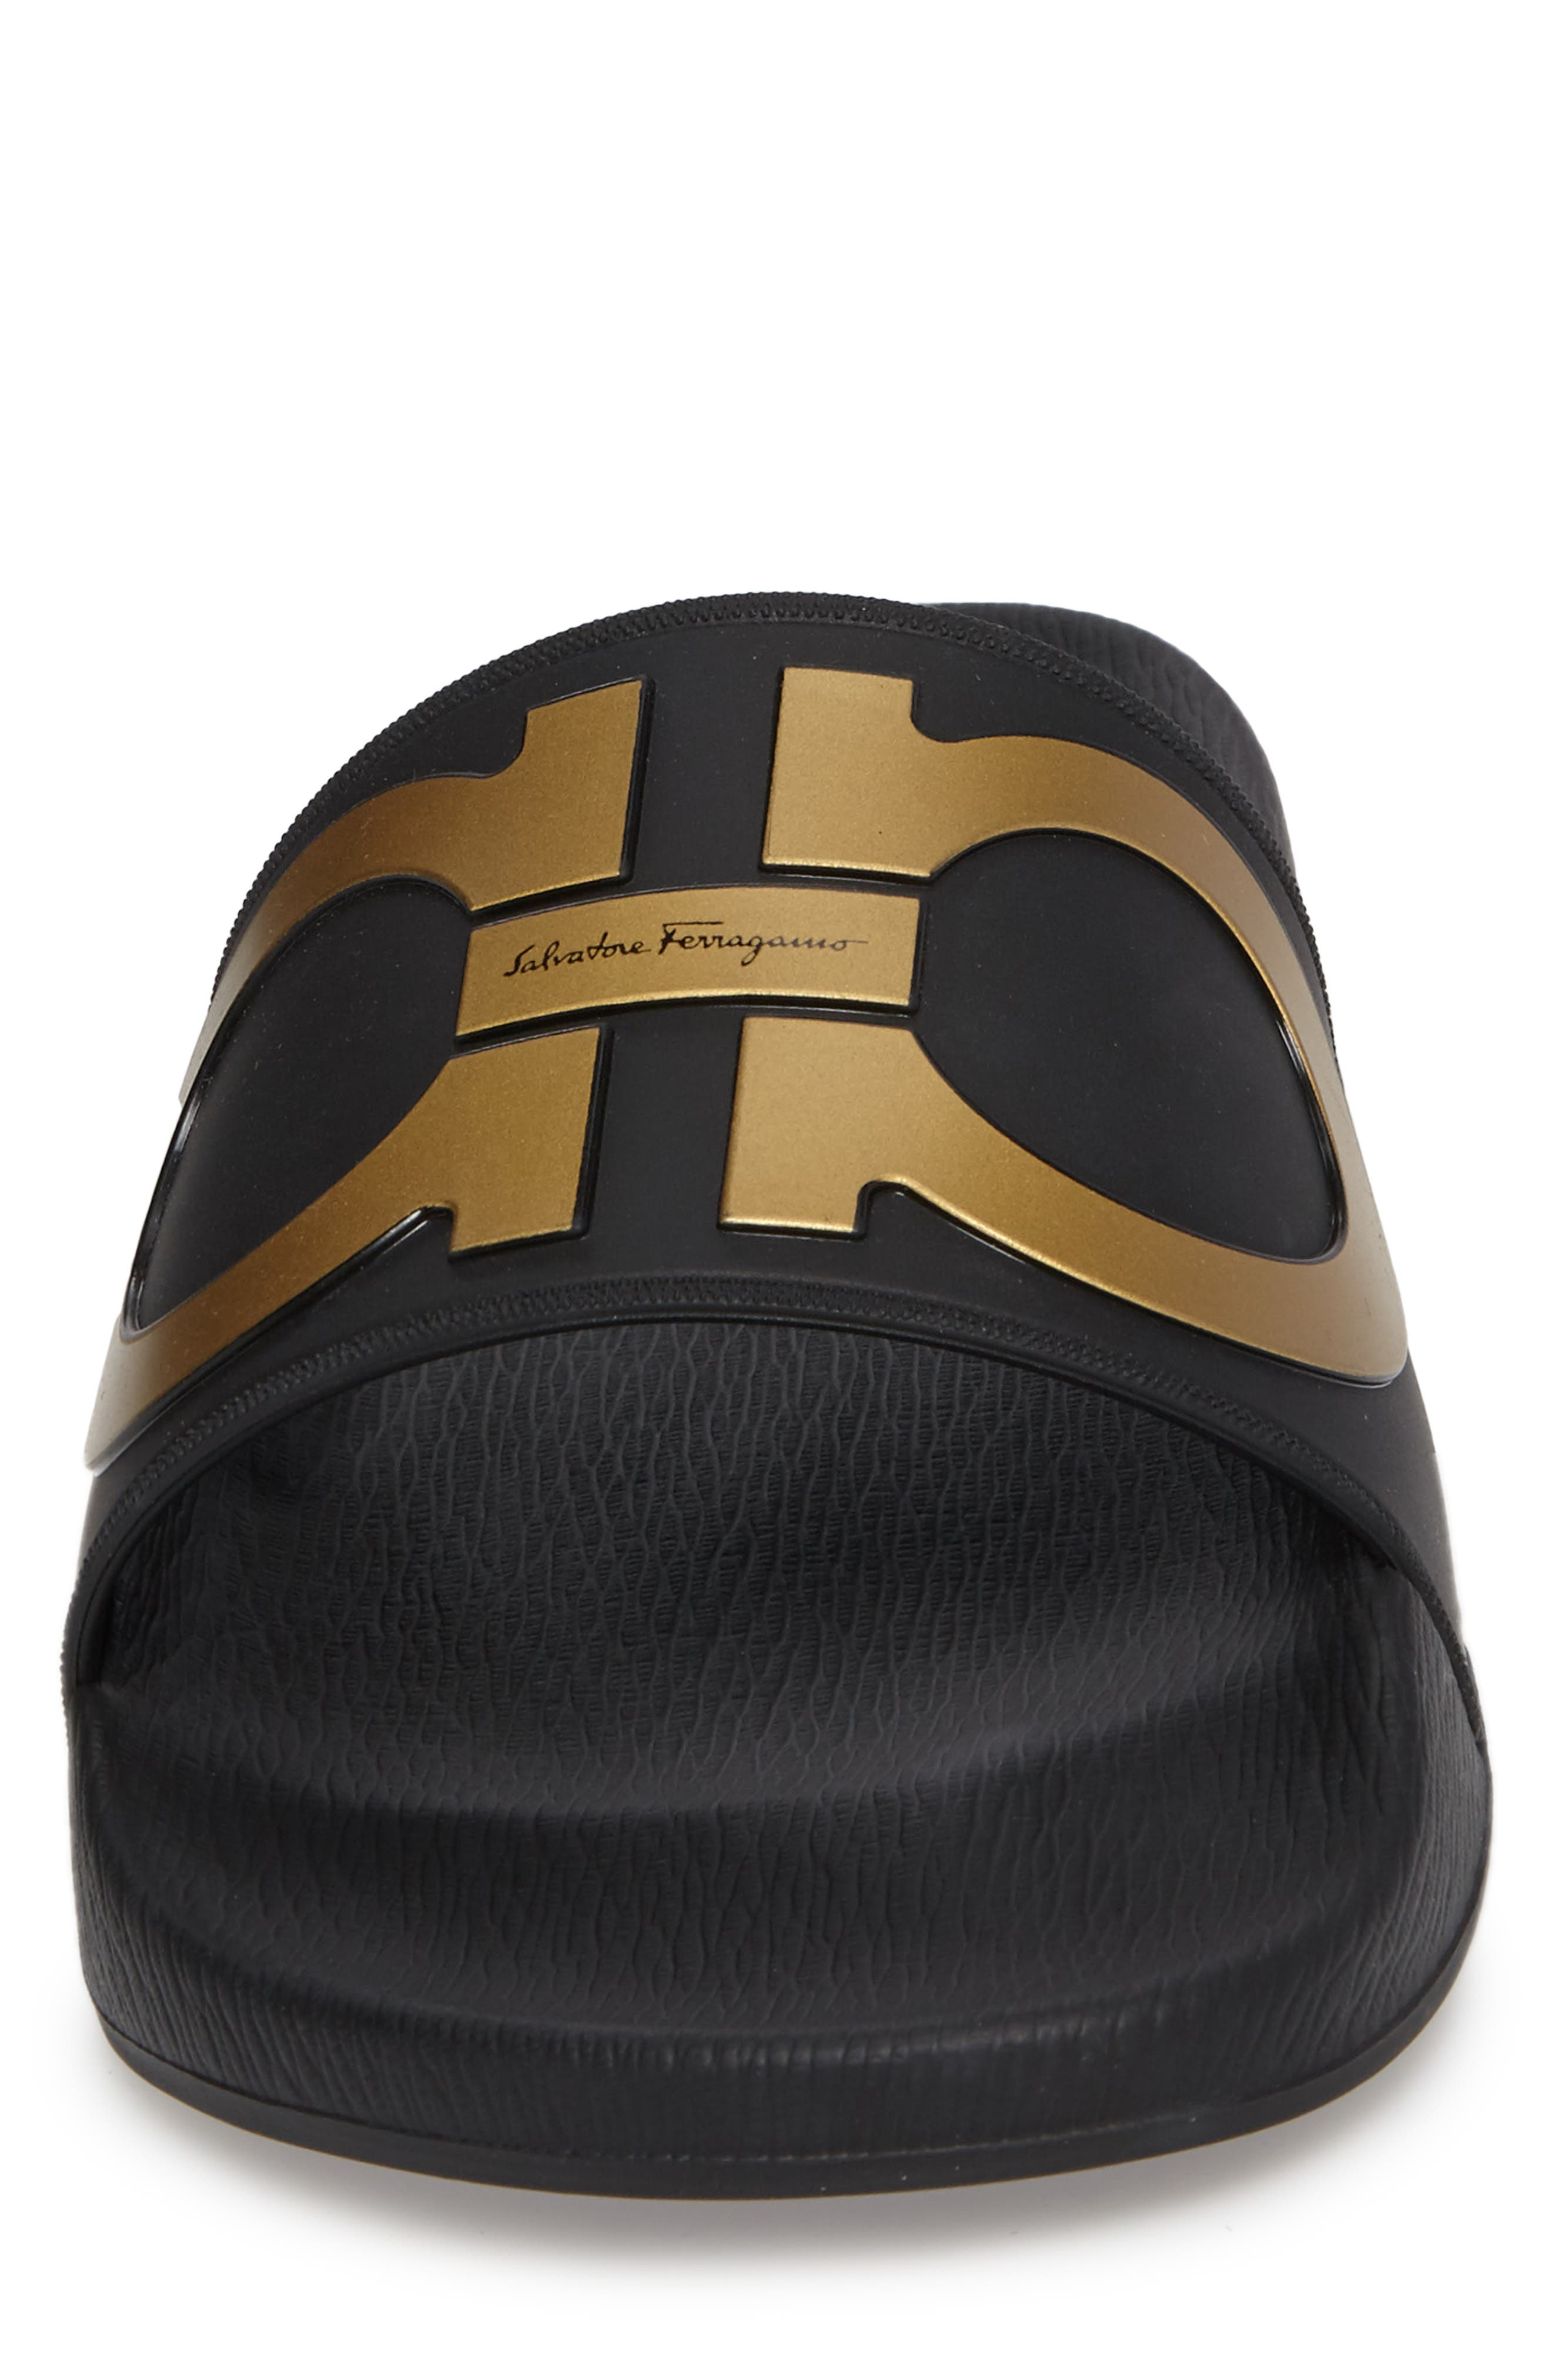 Groove 2 Slide Sandal,                             Alternate thumbnail 4, color,                             BLACK/GOLD